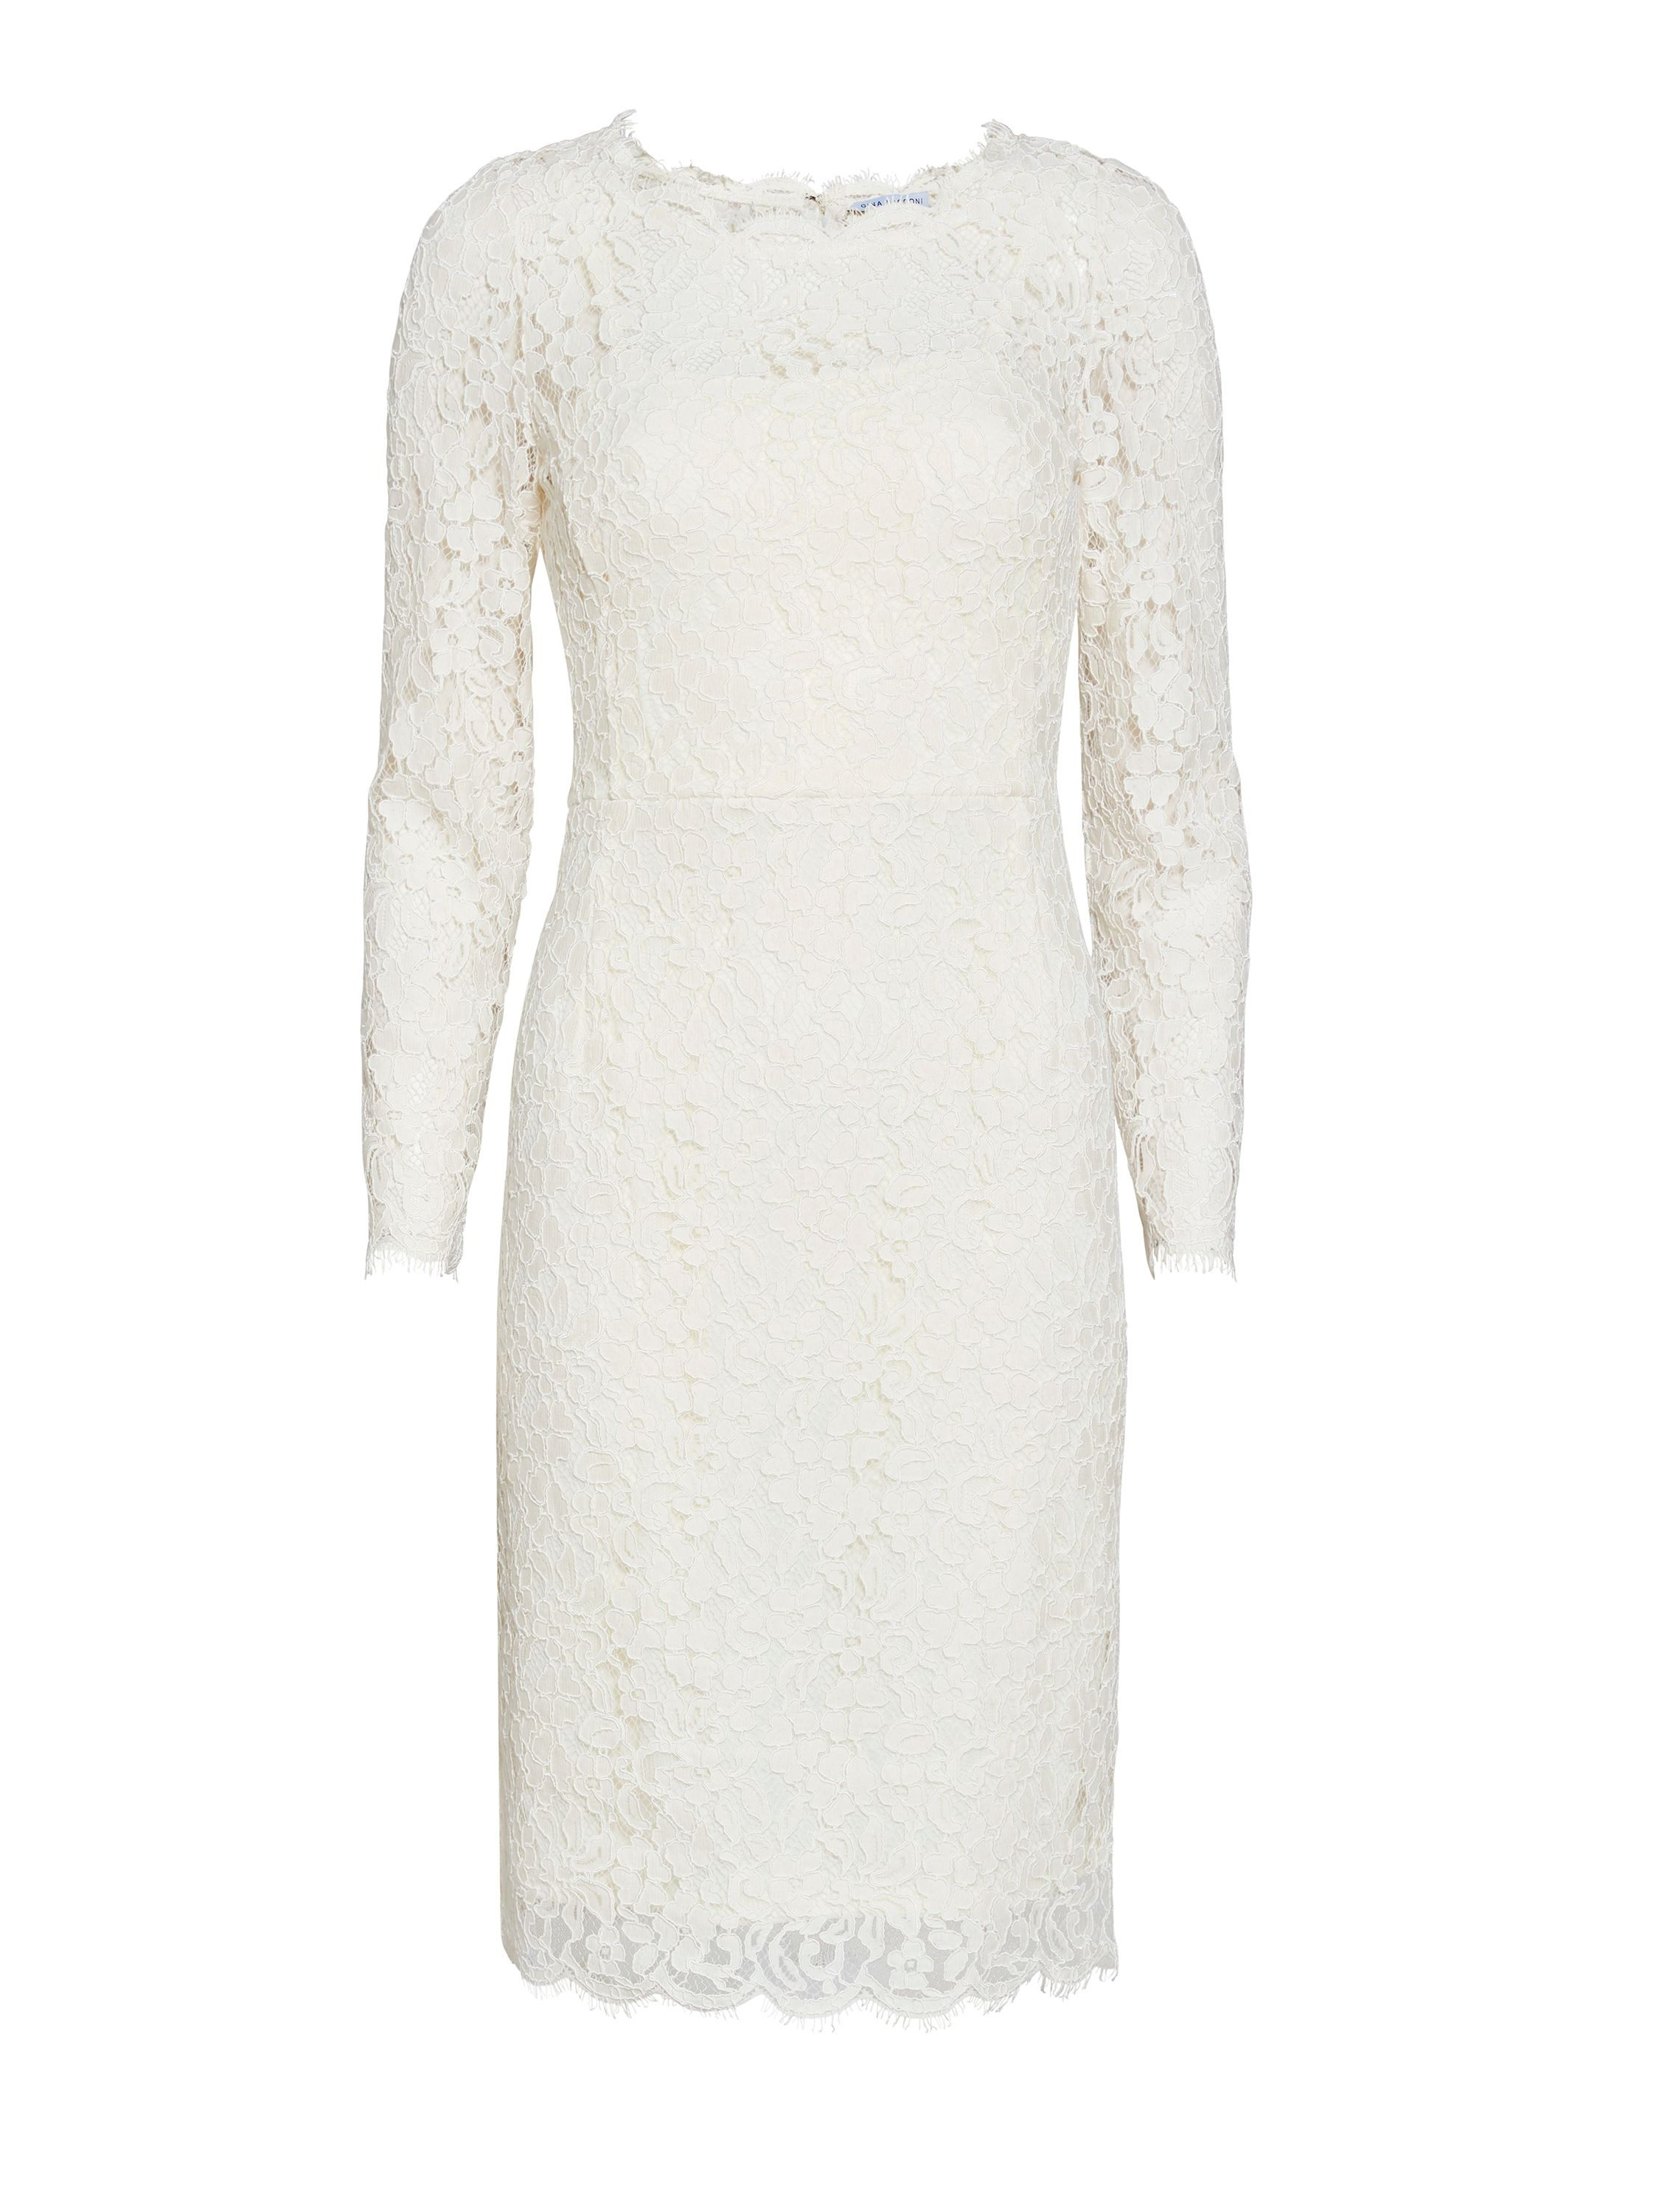 Gina Bacconi Lace dress with jewel flower buttons, White